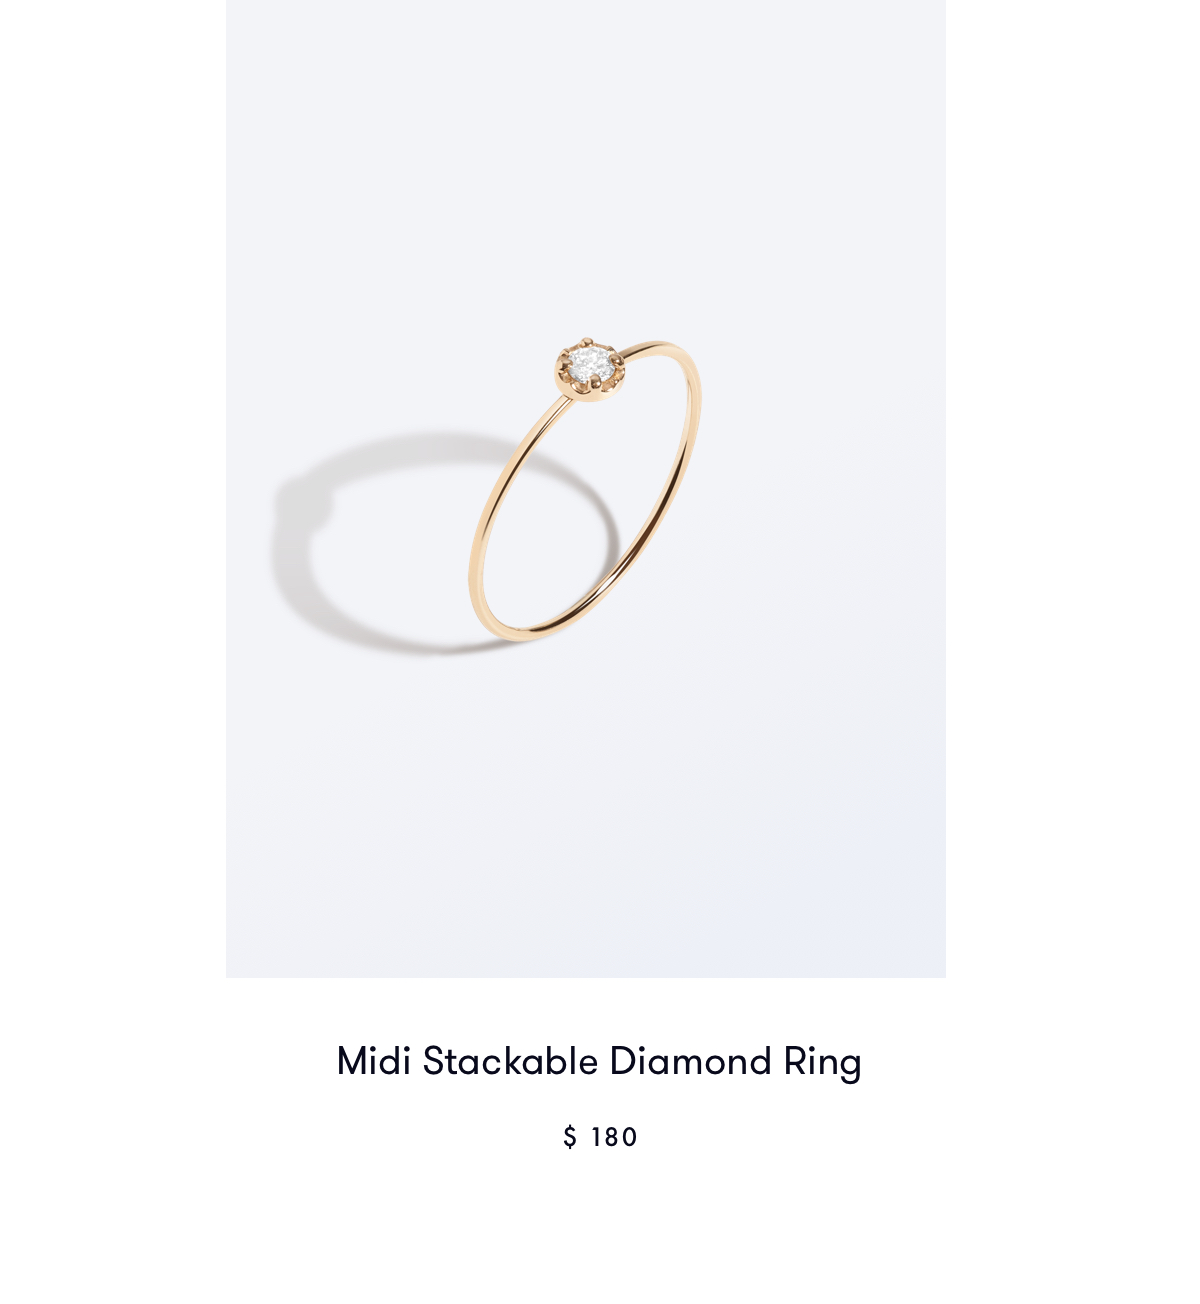 Midi Stackable Diamond Ring